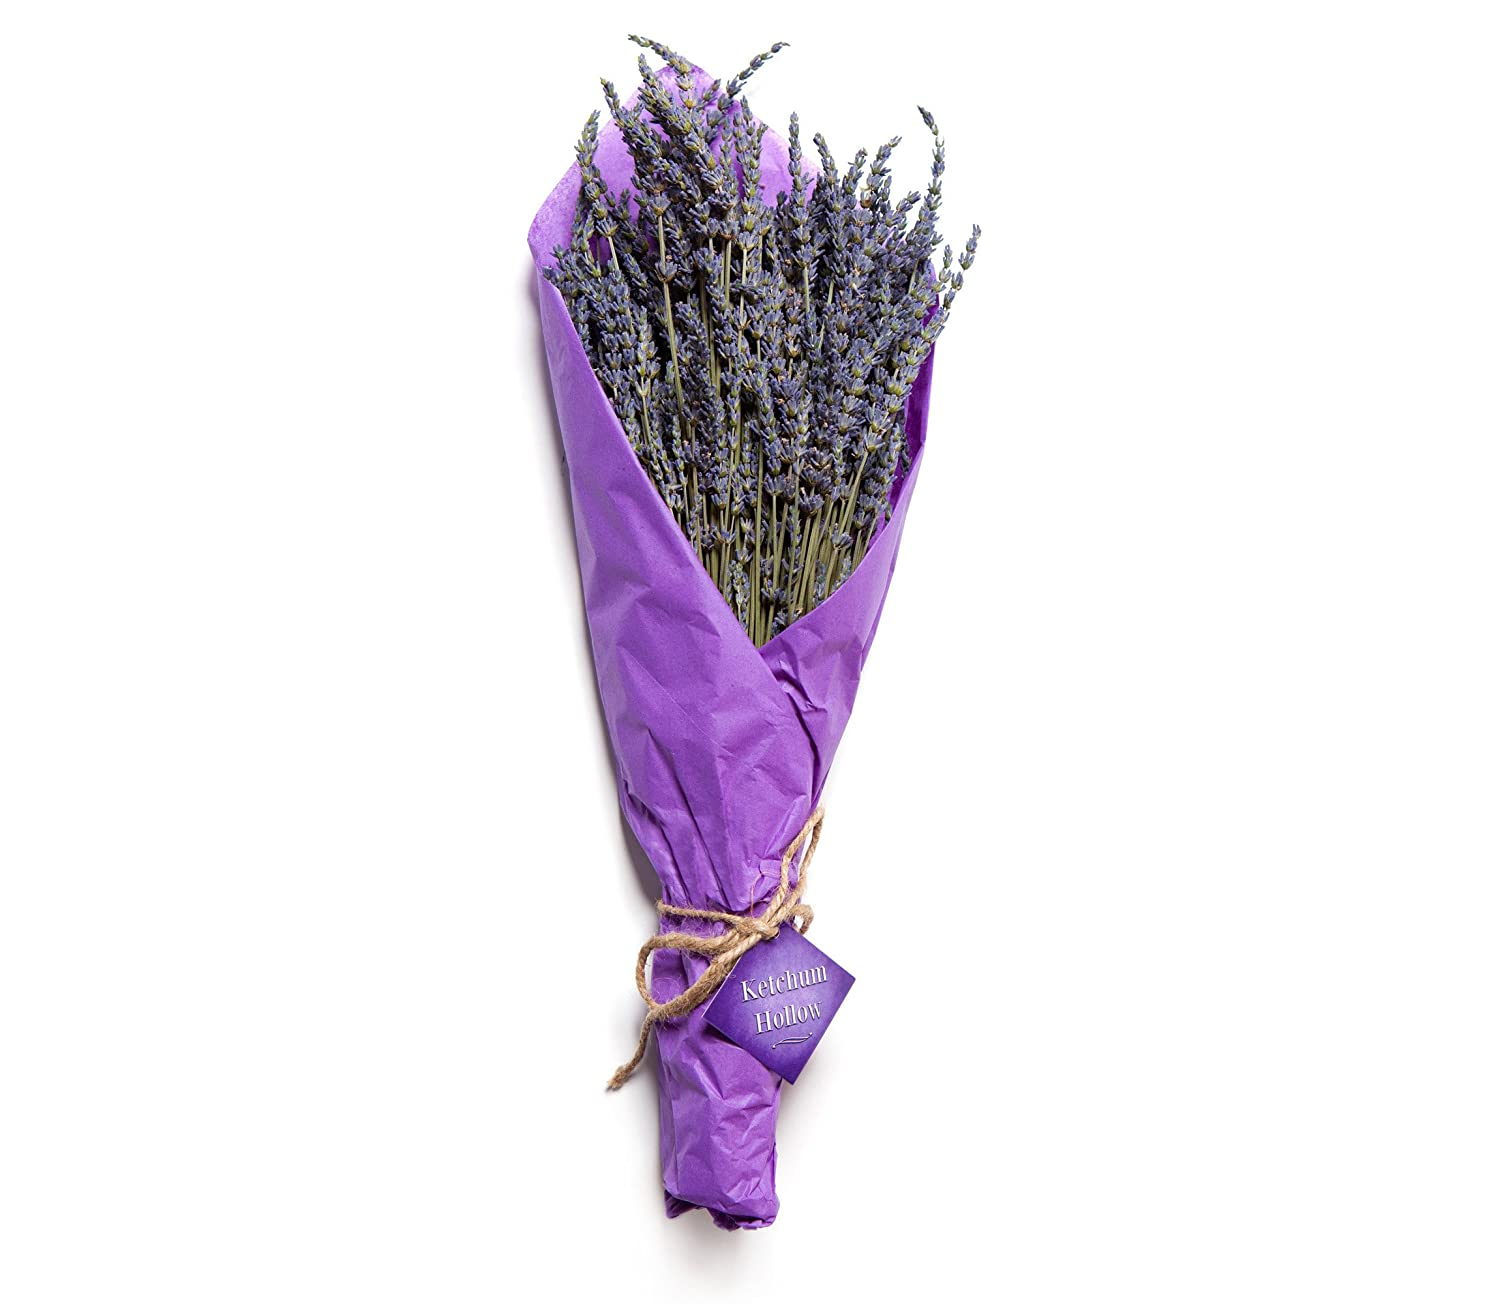 100% Natural Dried Lavender Bouquet from Ketchum Hollow, Grown in Idaho, USA, Bundle is Carefully Packaged for Safe Shipping, Perfect for Weddings, Home Decor, Gifts, and More